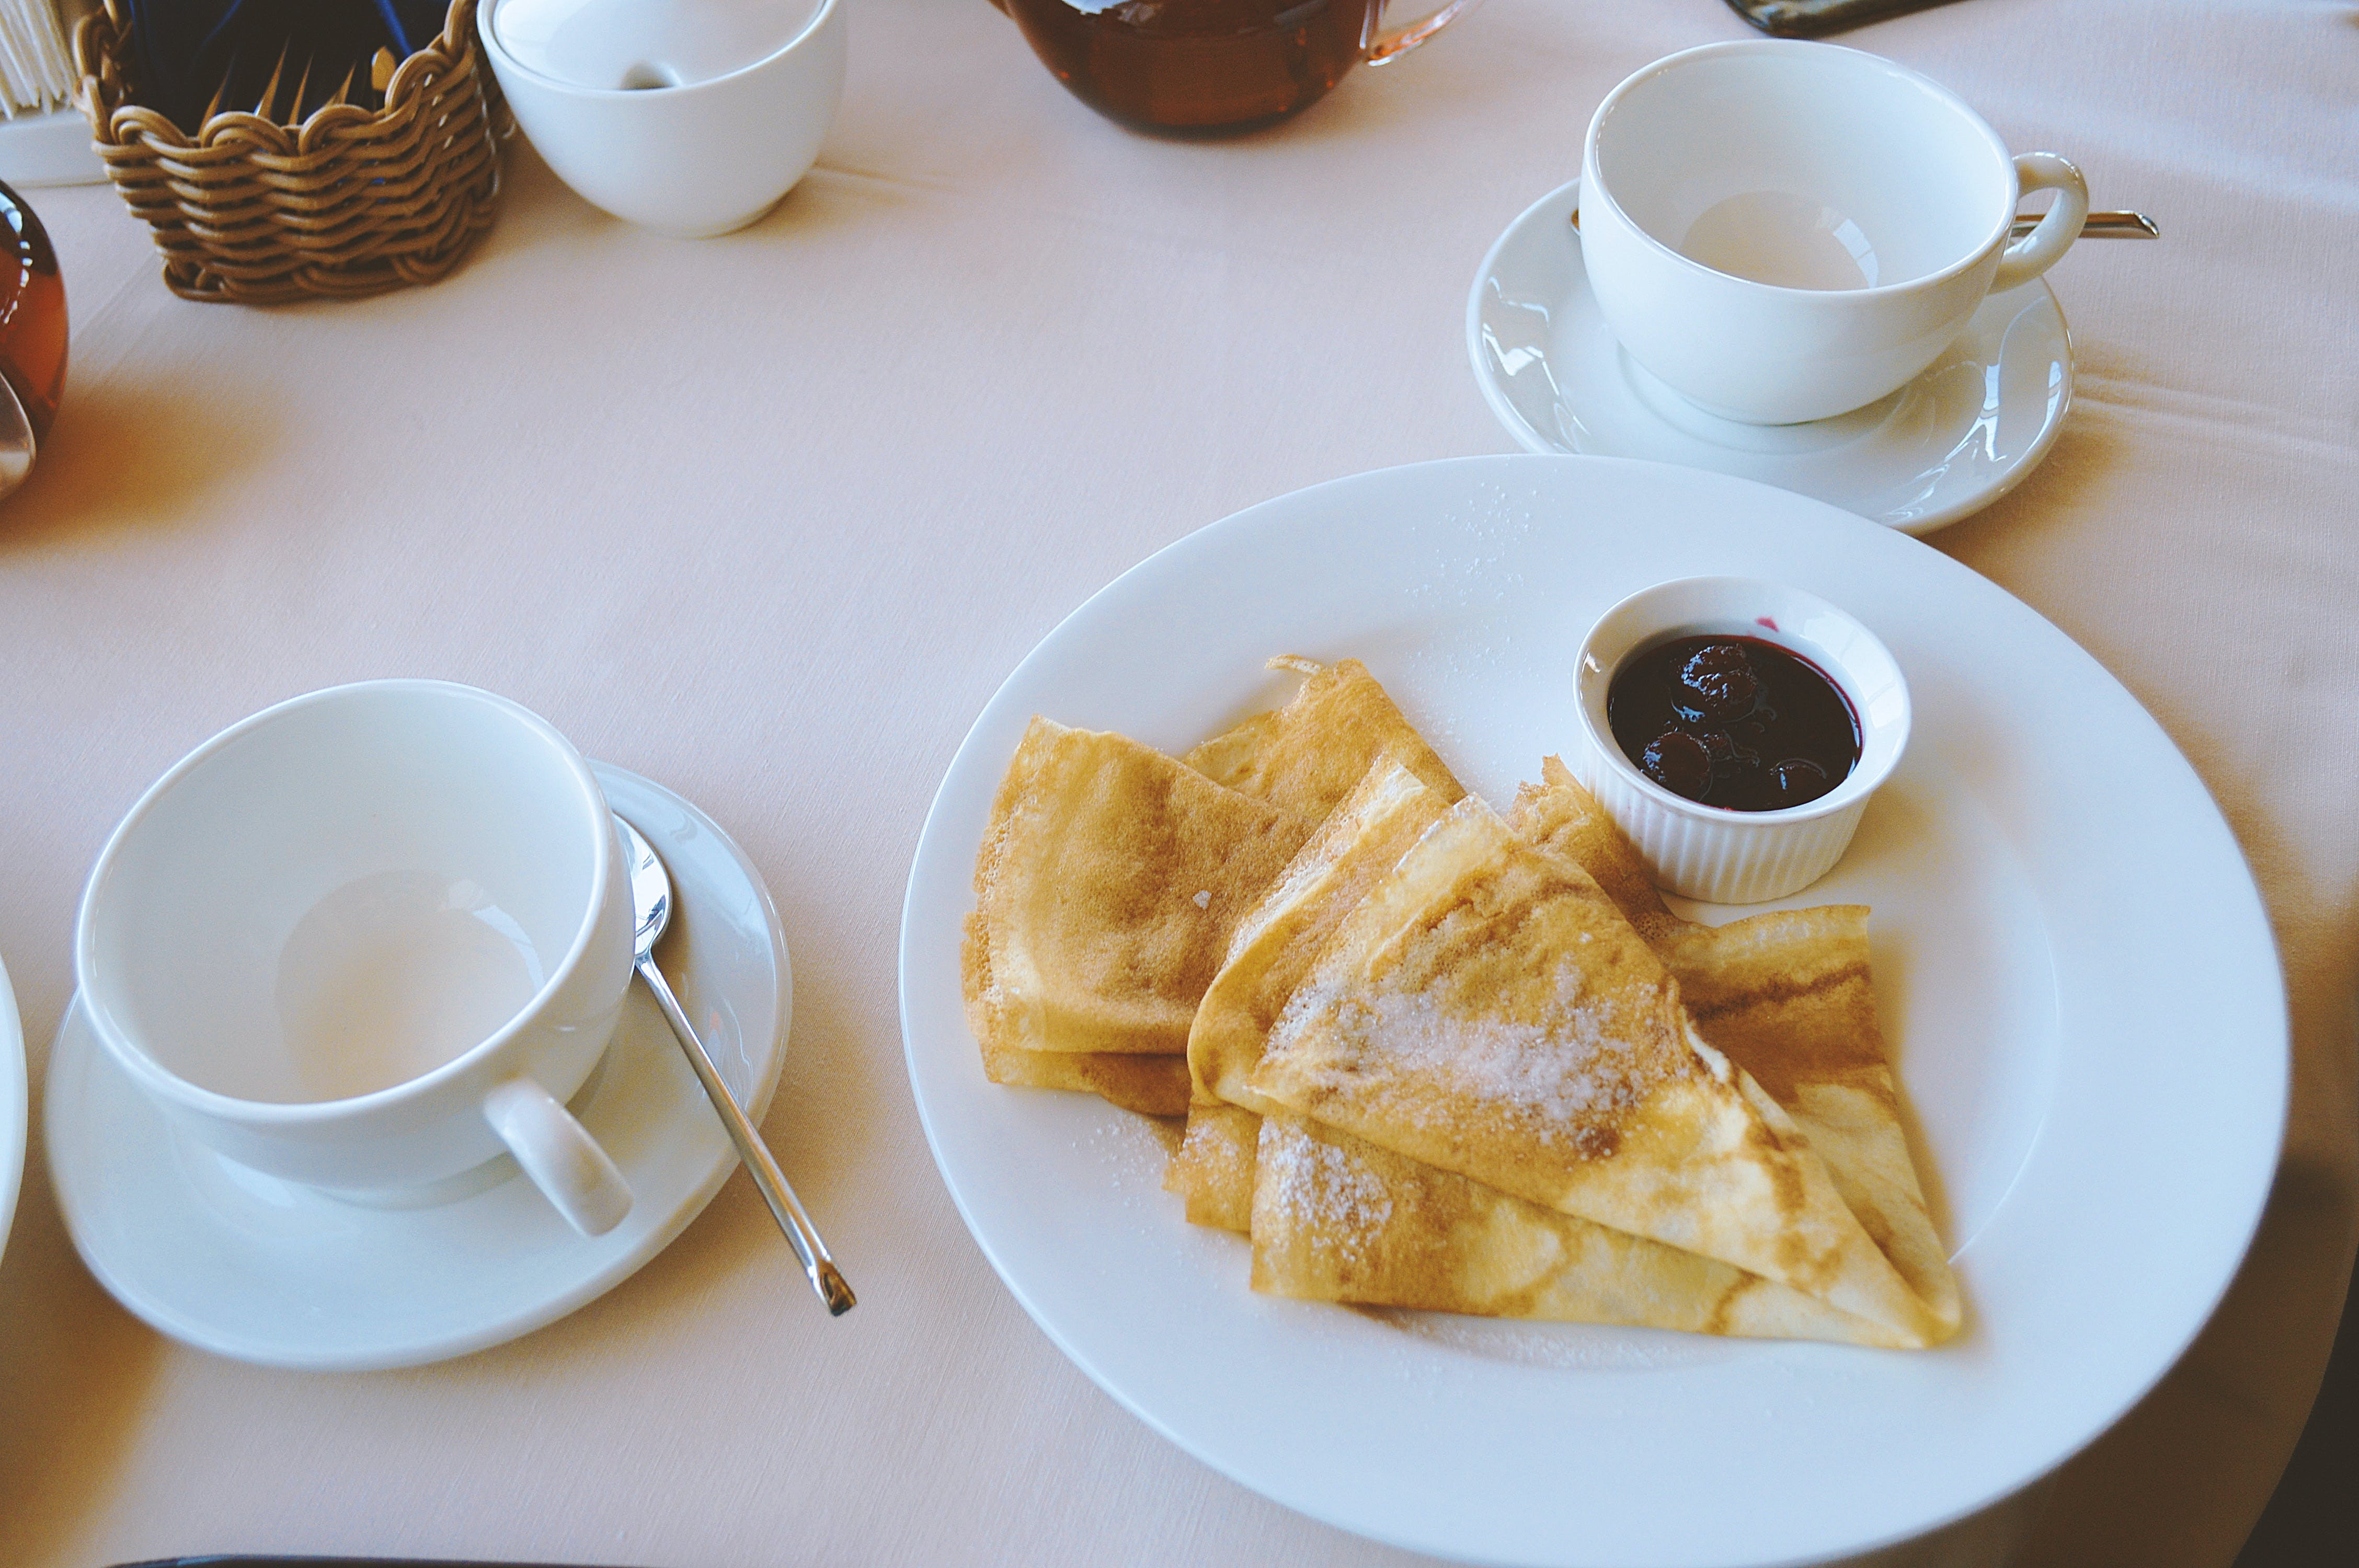 Pan Cakes Served on White Ceramic Plate